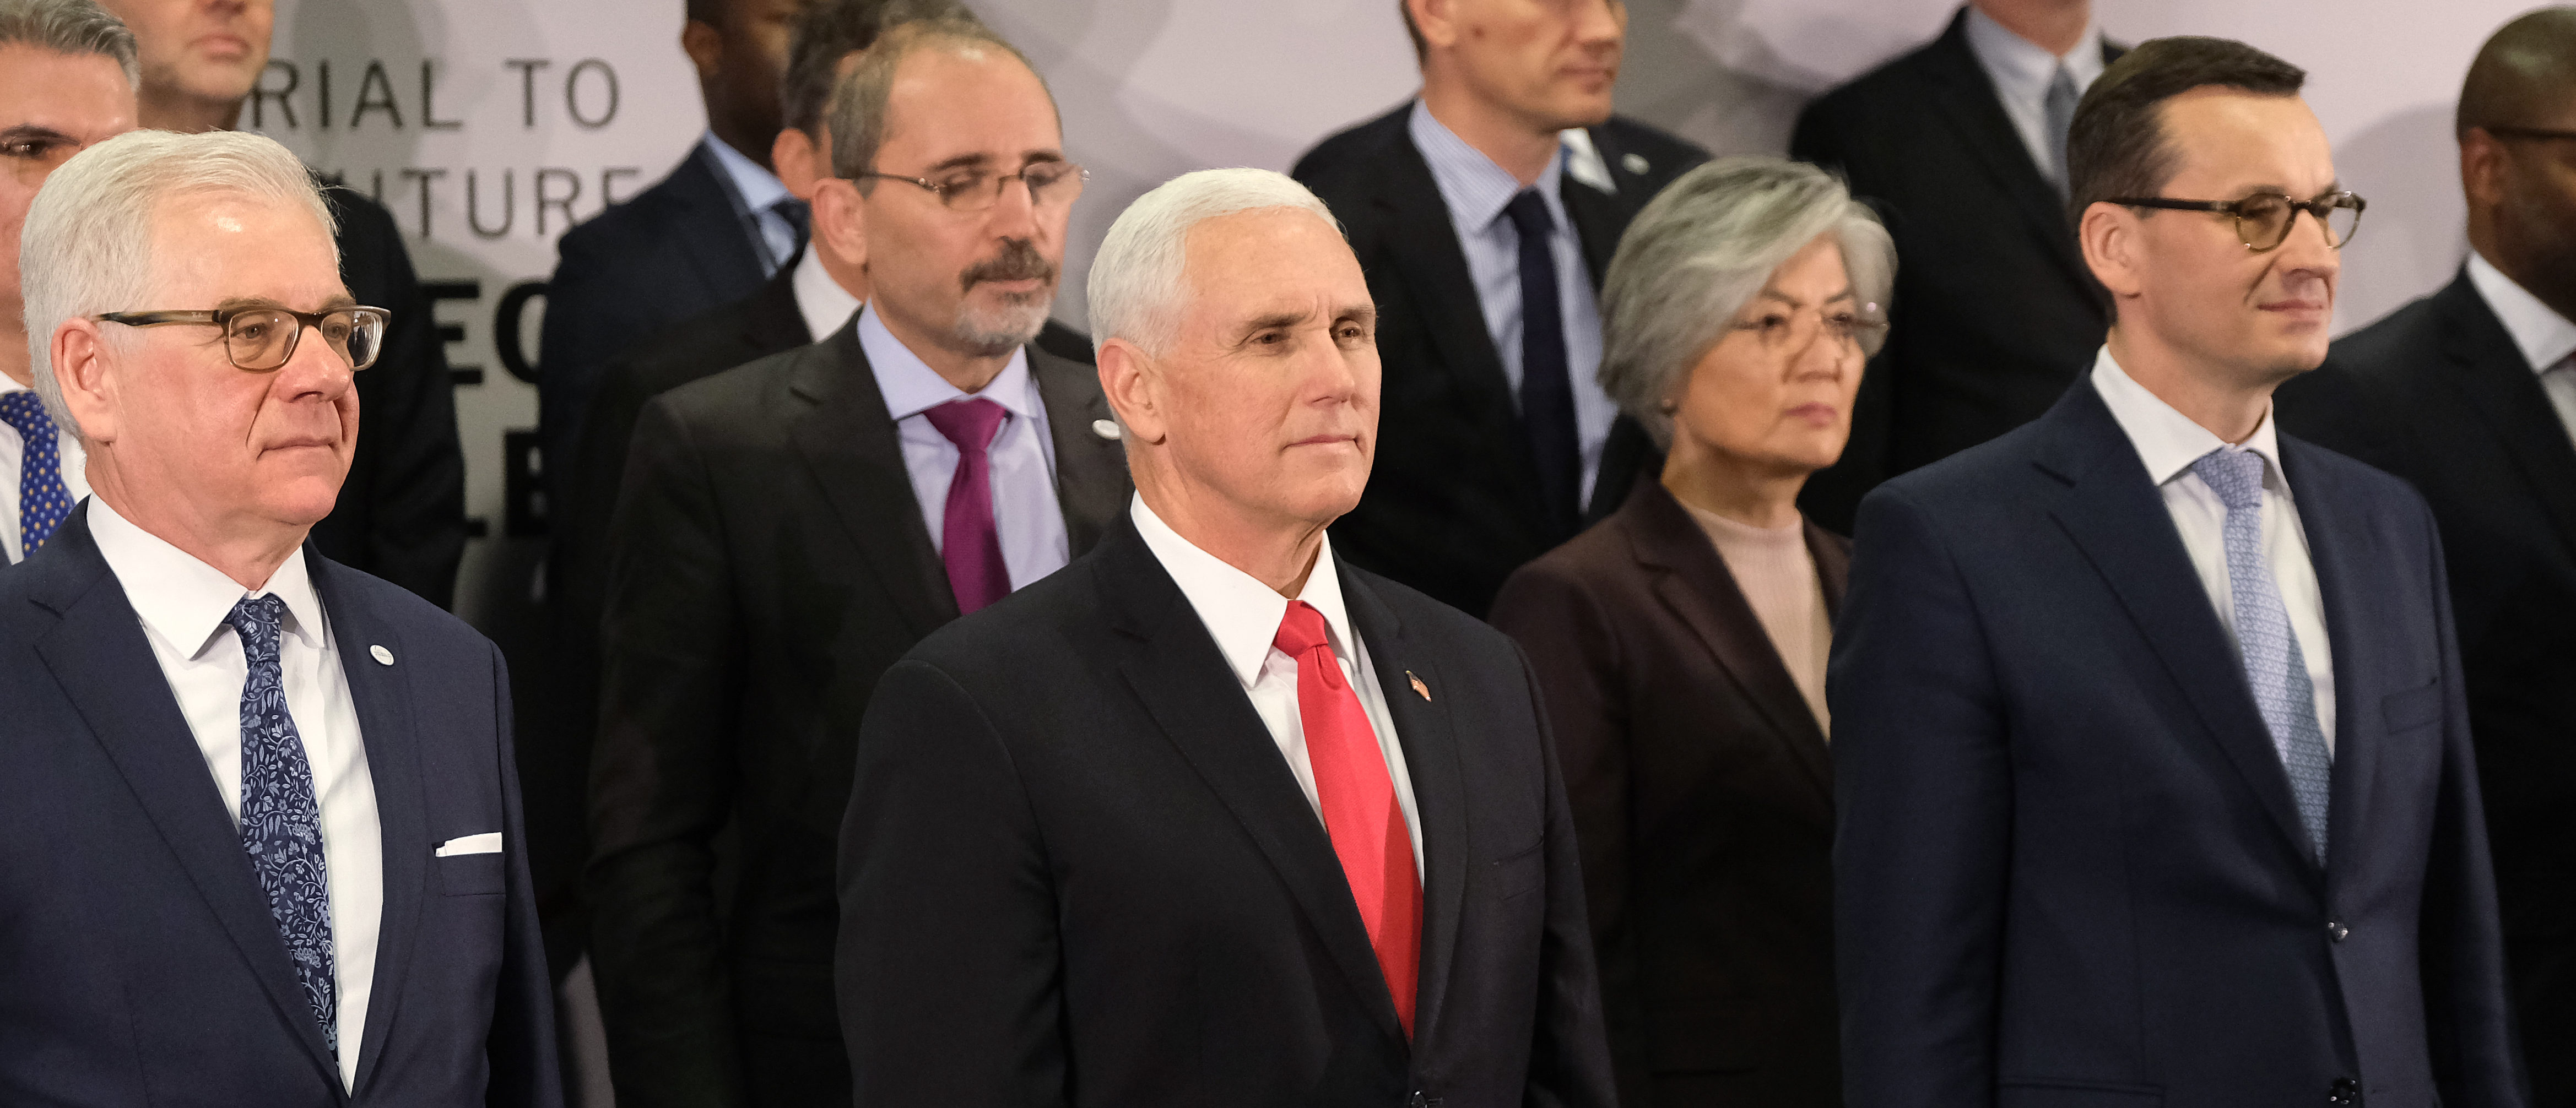 WARSAW, POLAND - FEBRUARY 14: U.S. Vice President Mike Pence (C) stands next to Polish Prime Minister Mateusz Morawiecki (R) and Polish Foreign Minister Jazek Czaputowicz at the group photo at the Ministerial to Promote a Future of Peace and Security in the Middle East on February 14, 2019 in Warsaw, Poland. (Sean Gallup/Getty Images)